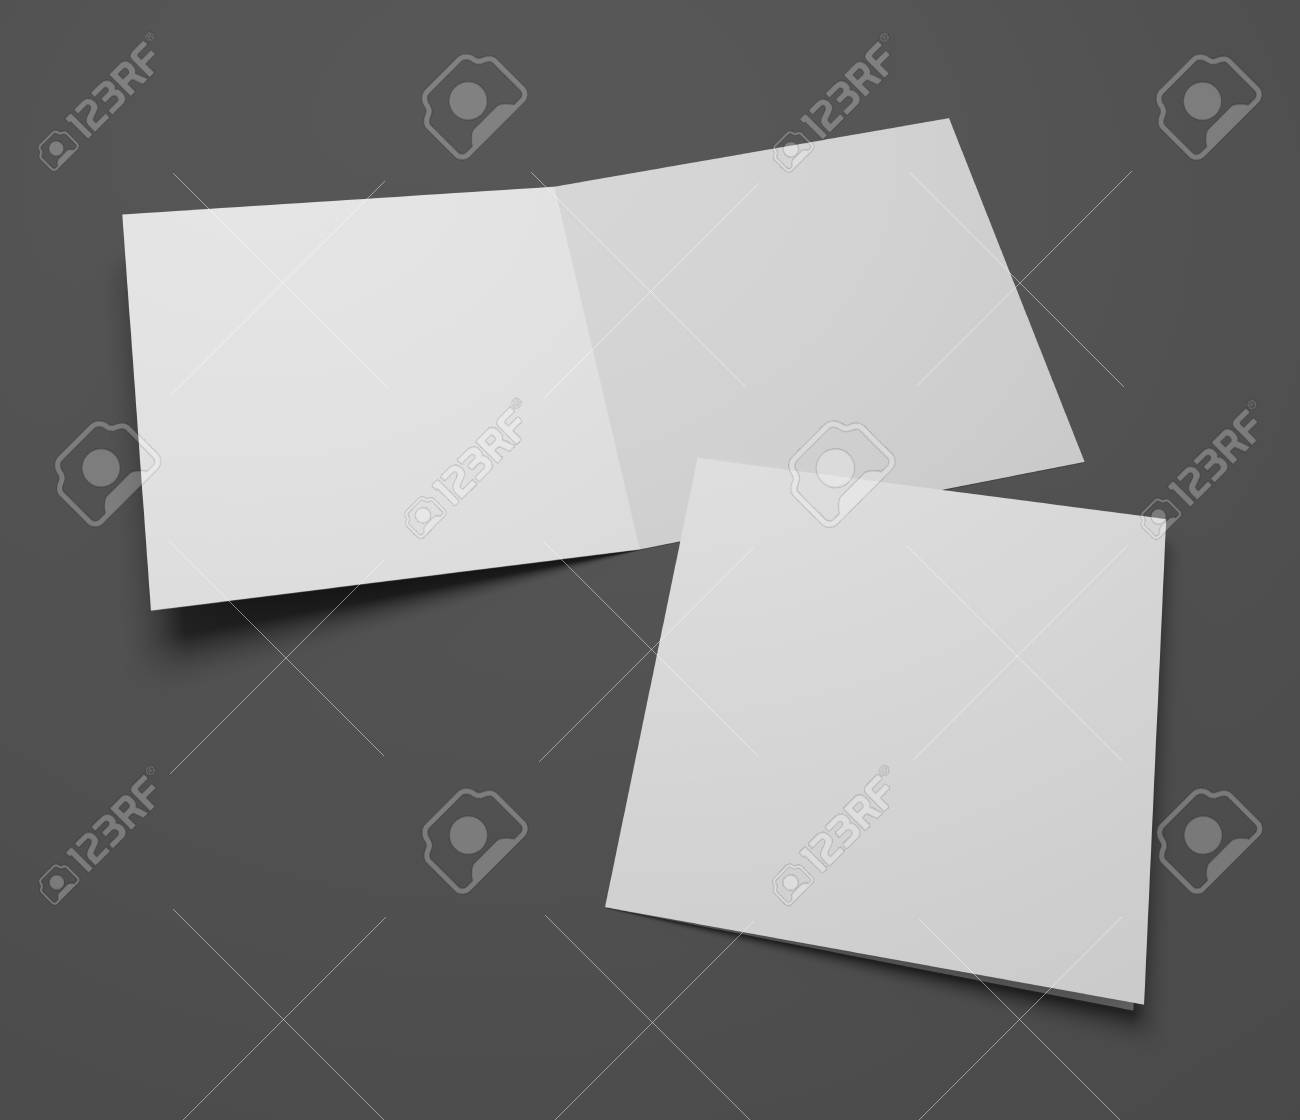 Blank Square Greeting Card Or Brochure Isolated On Dark Gray